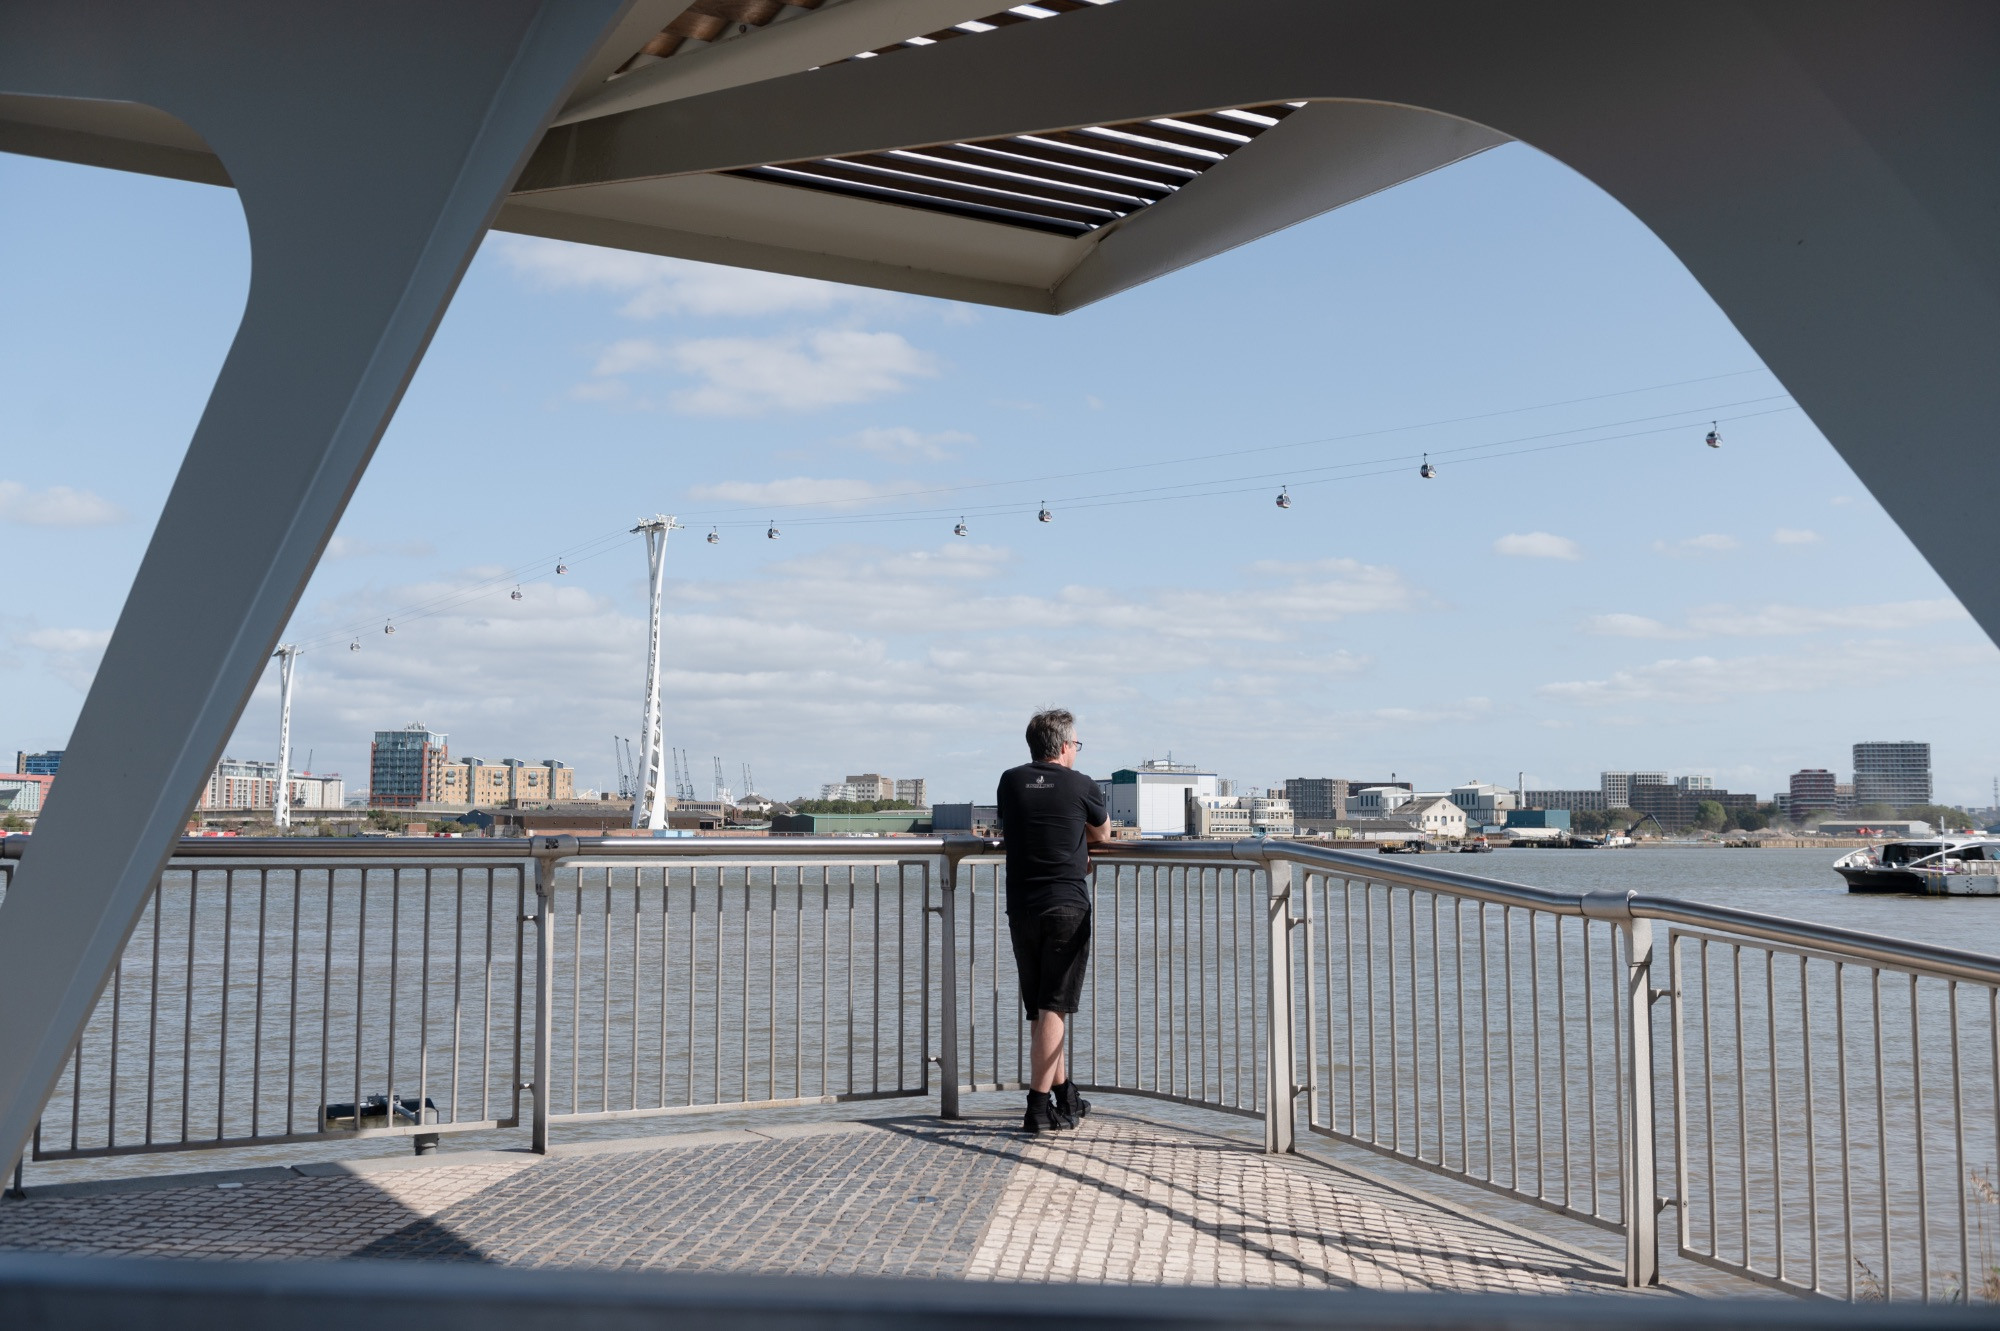 Man looking out at the river from a covered platform, with the cable car in view